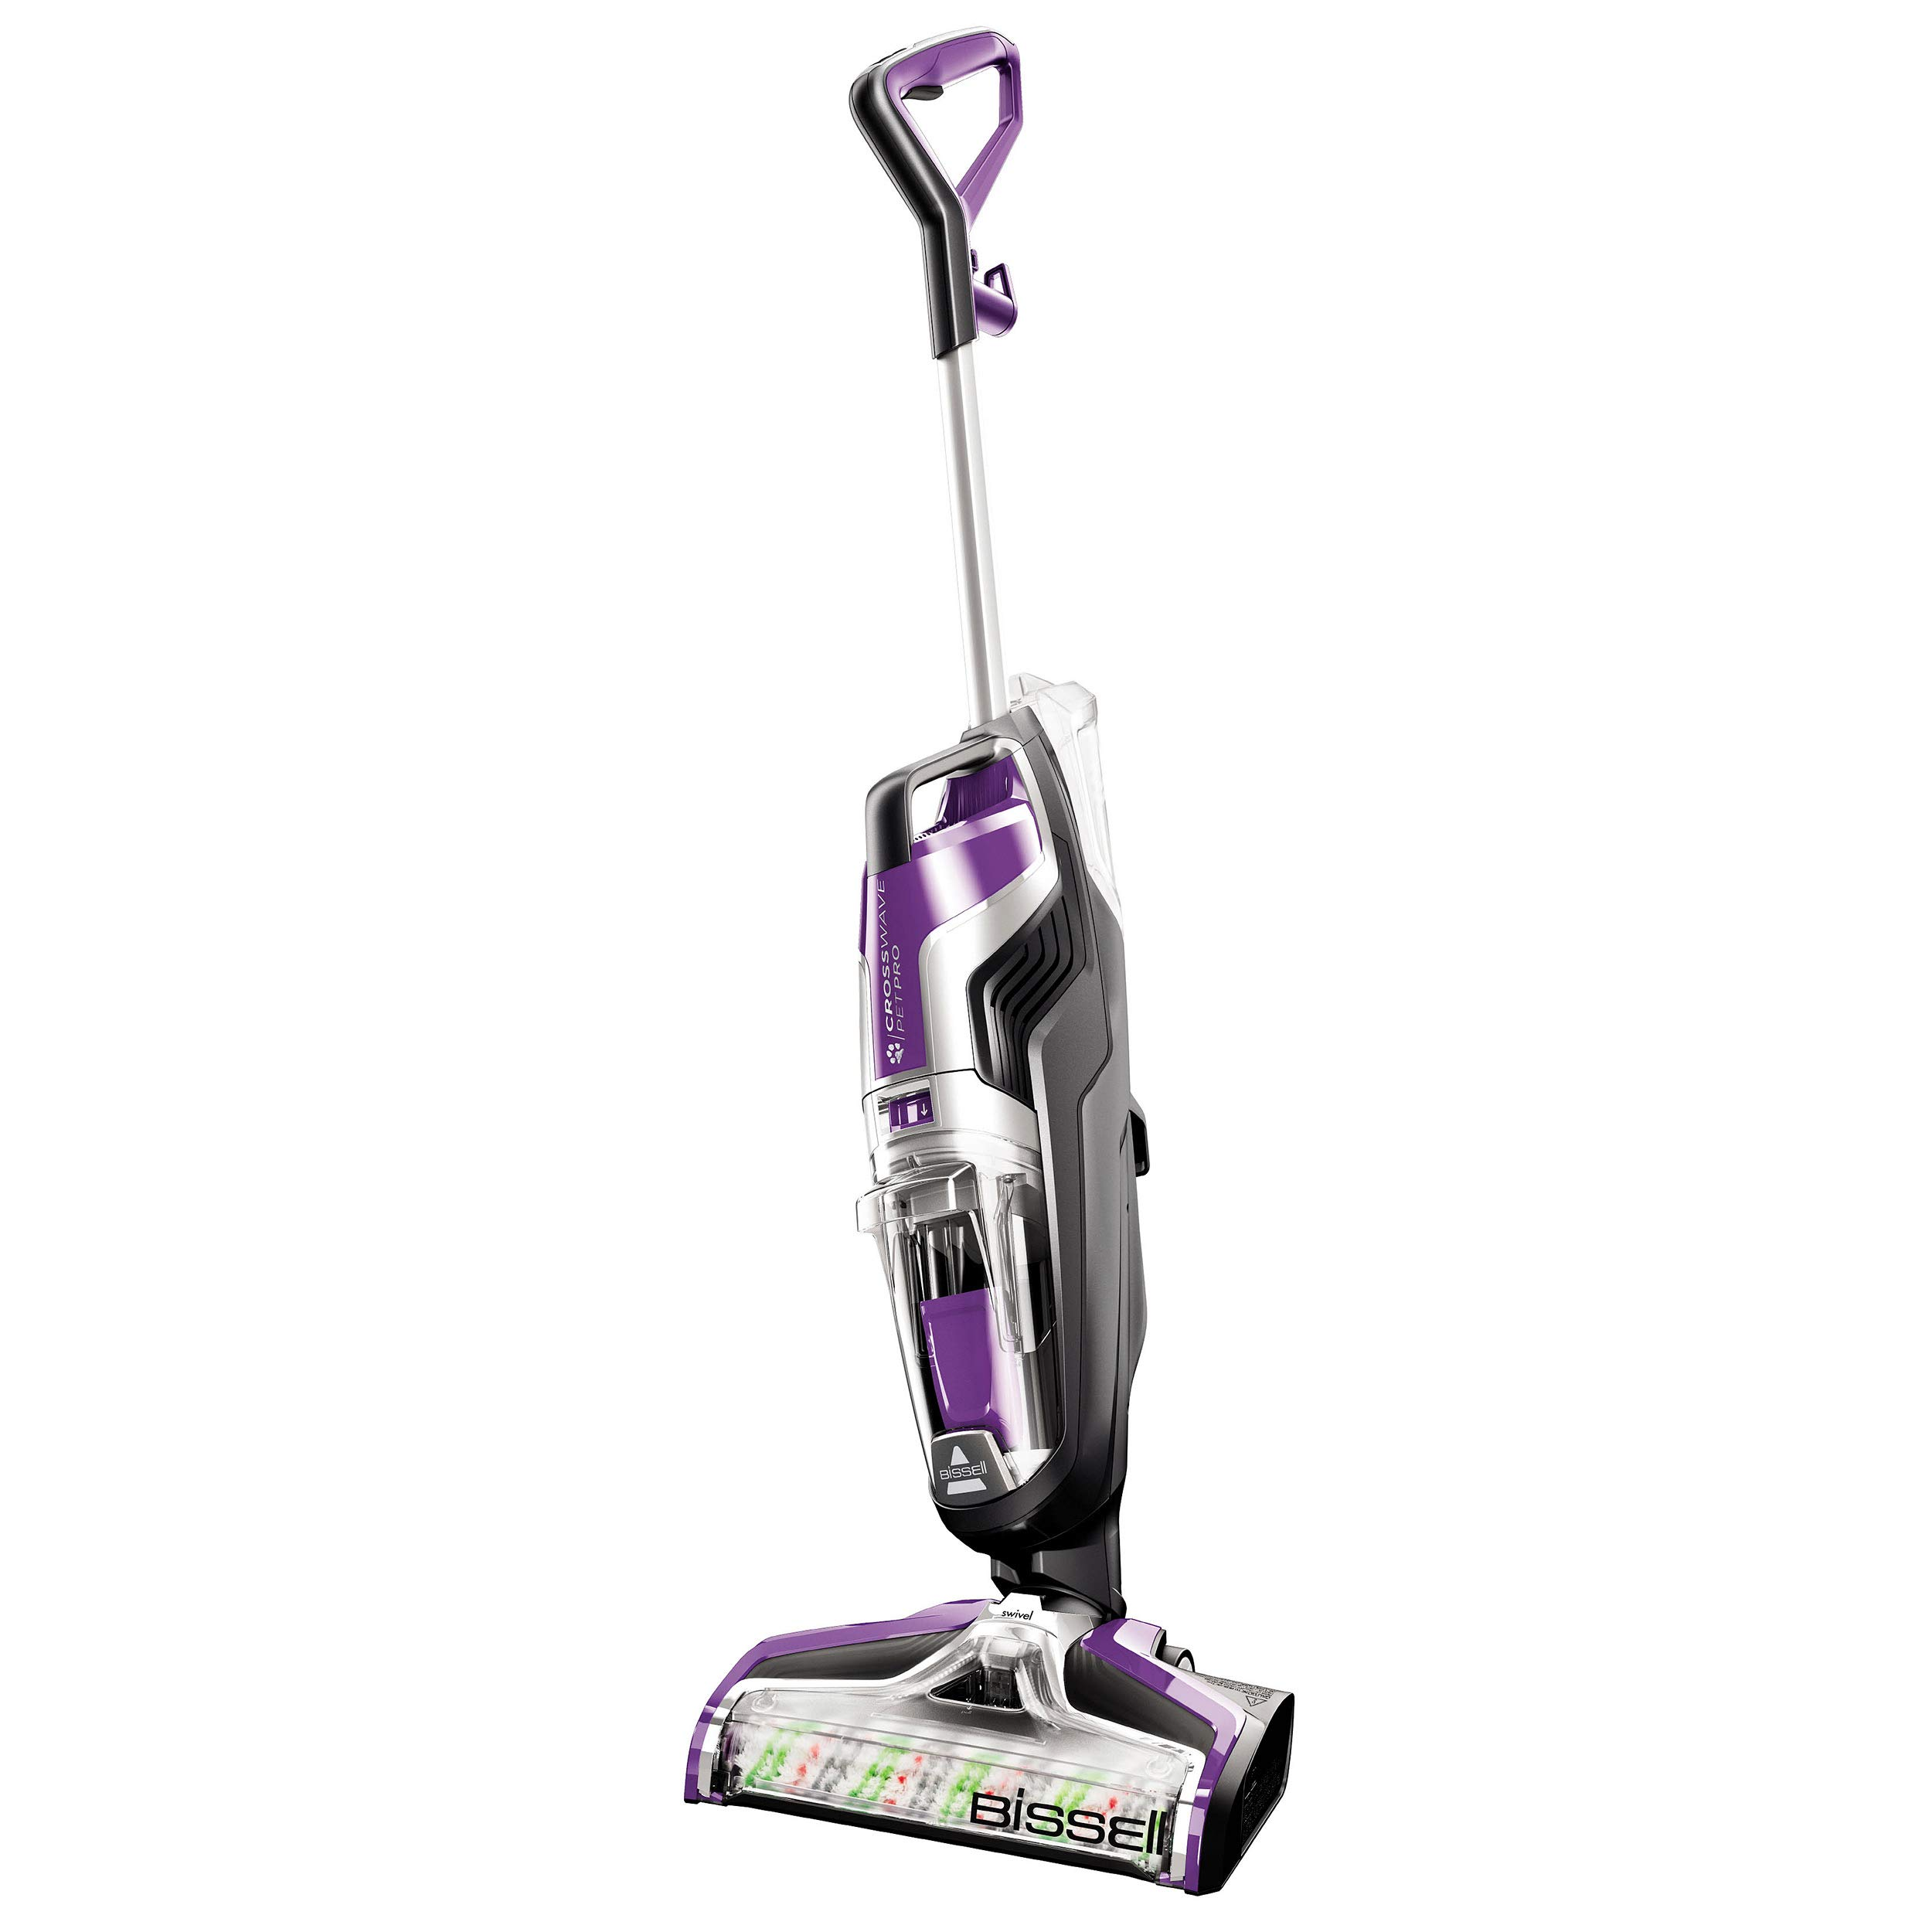 BISSELL Crosswave Pet Pro All in One Wet Dry Vacuum Cleaner and Mop for Hard floors and Area Rugs, 2306A by Bissell